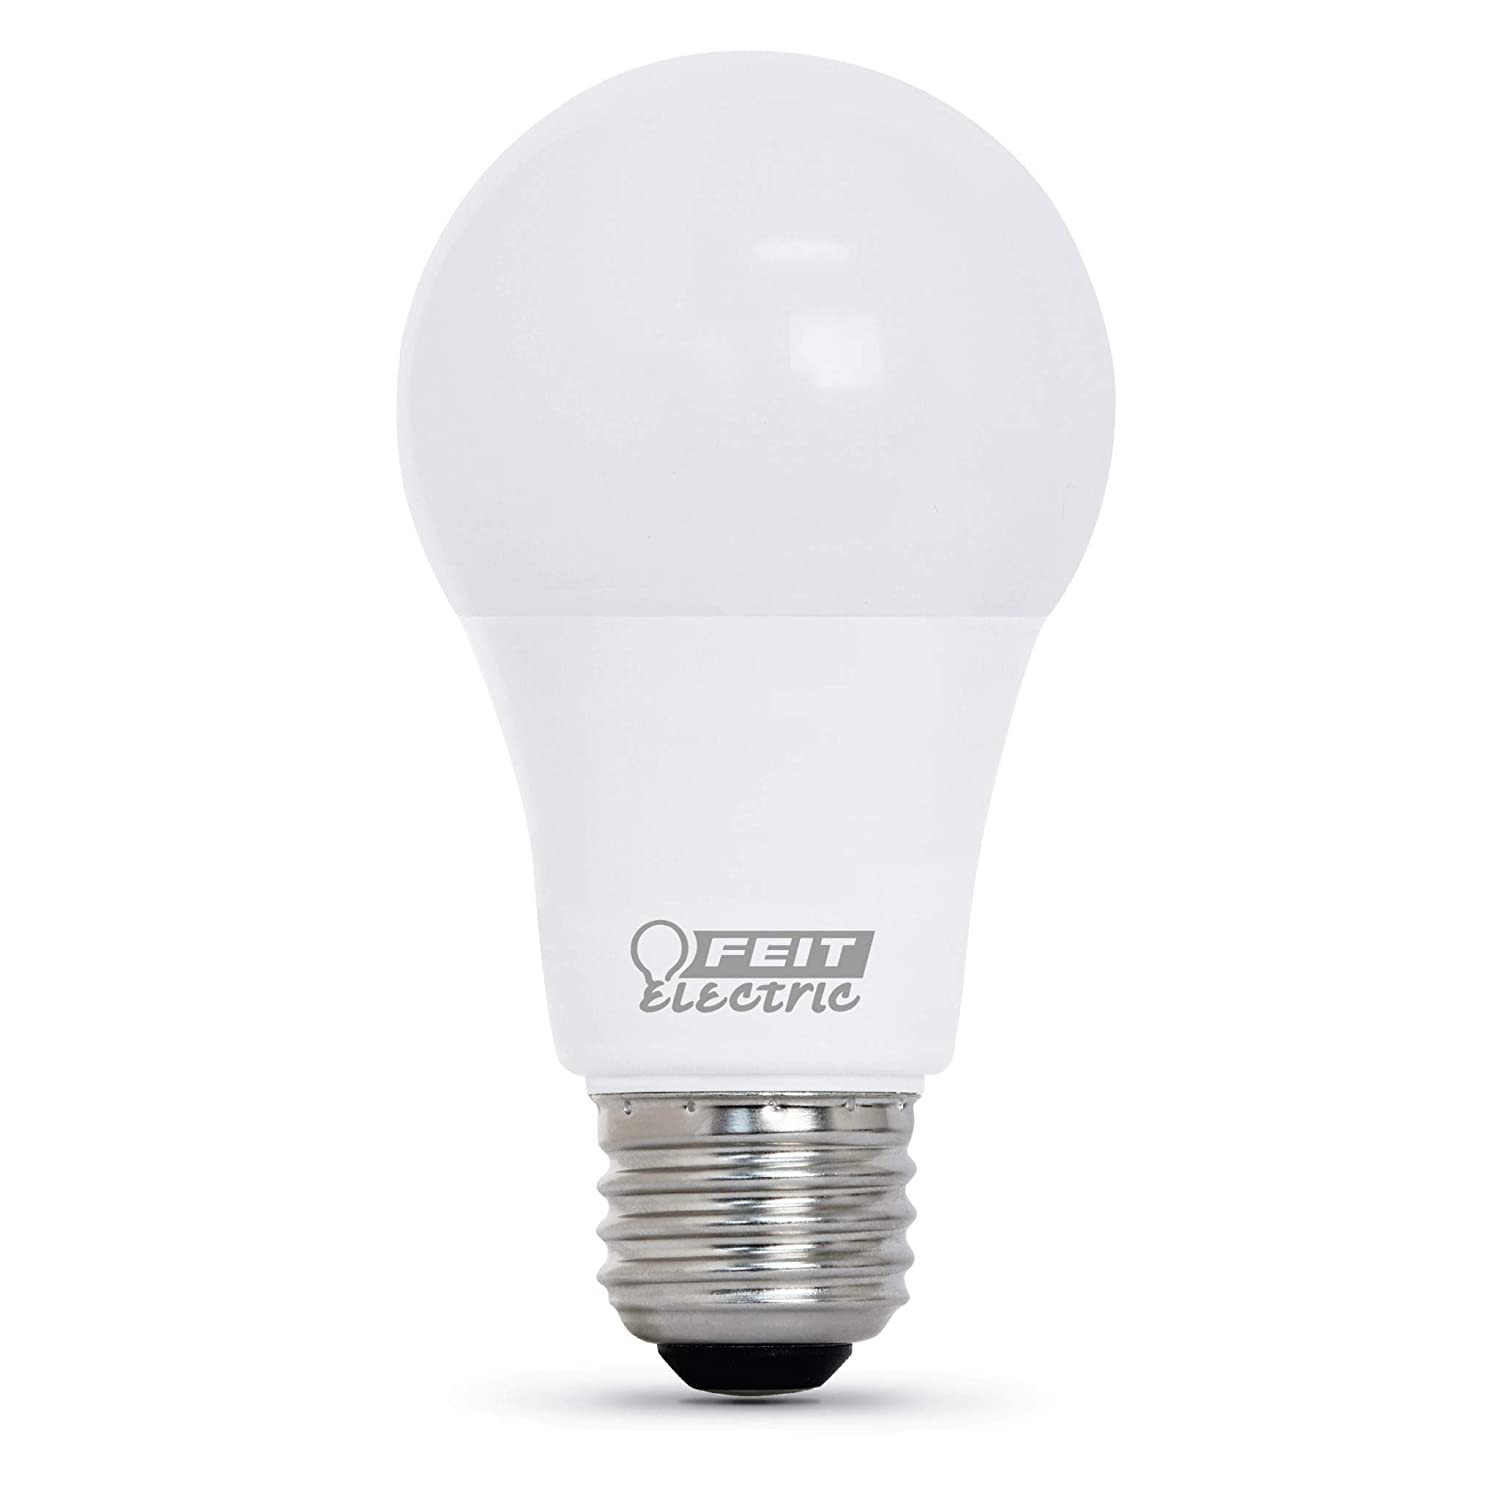 Feit Electric LED A19 40W Equivalent 450 Lumens 5000K 25000 Life Hours CEC Compliant Pack of 52